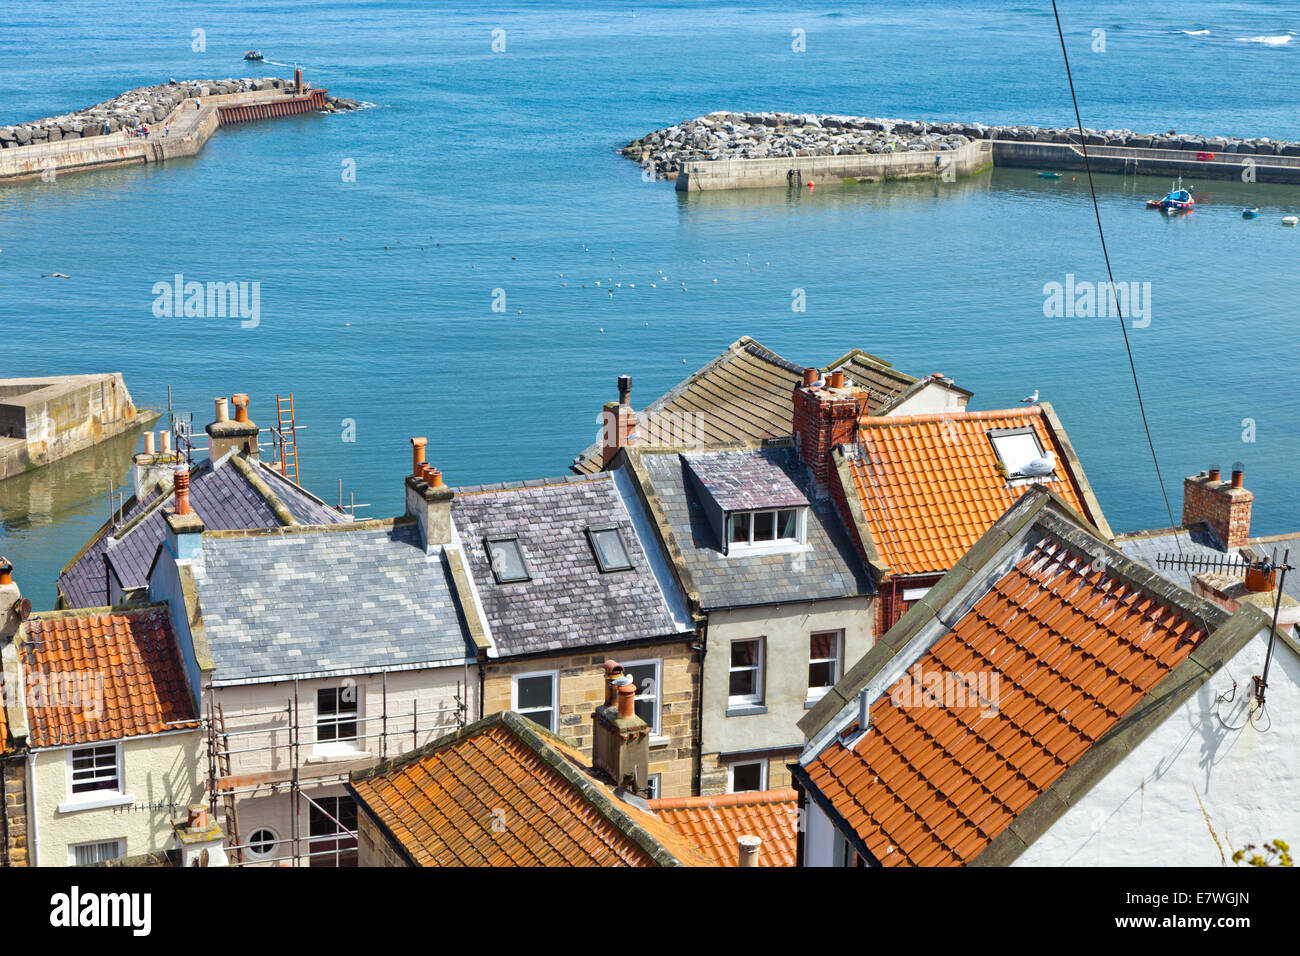 The harbour on a bright sunny day in the village of Staithes North Yorkshire - Stock Image